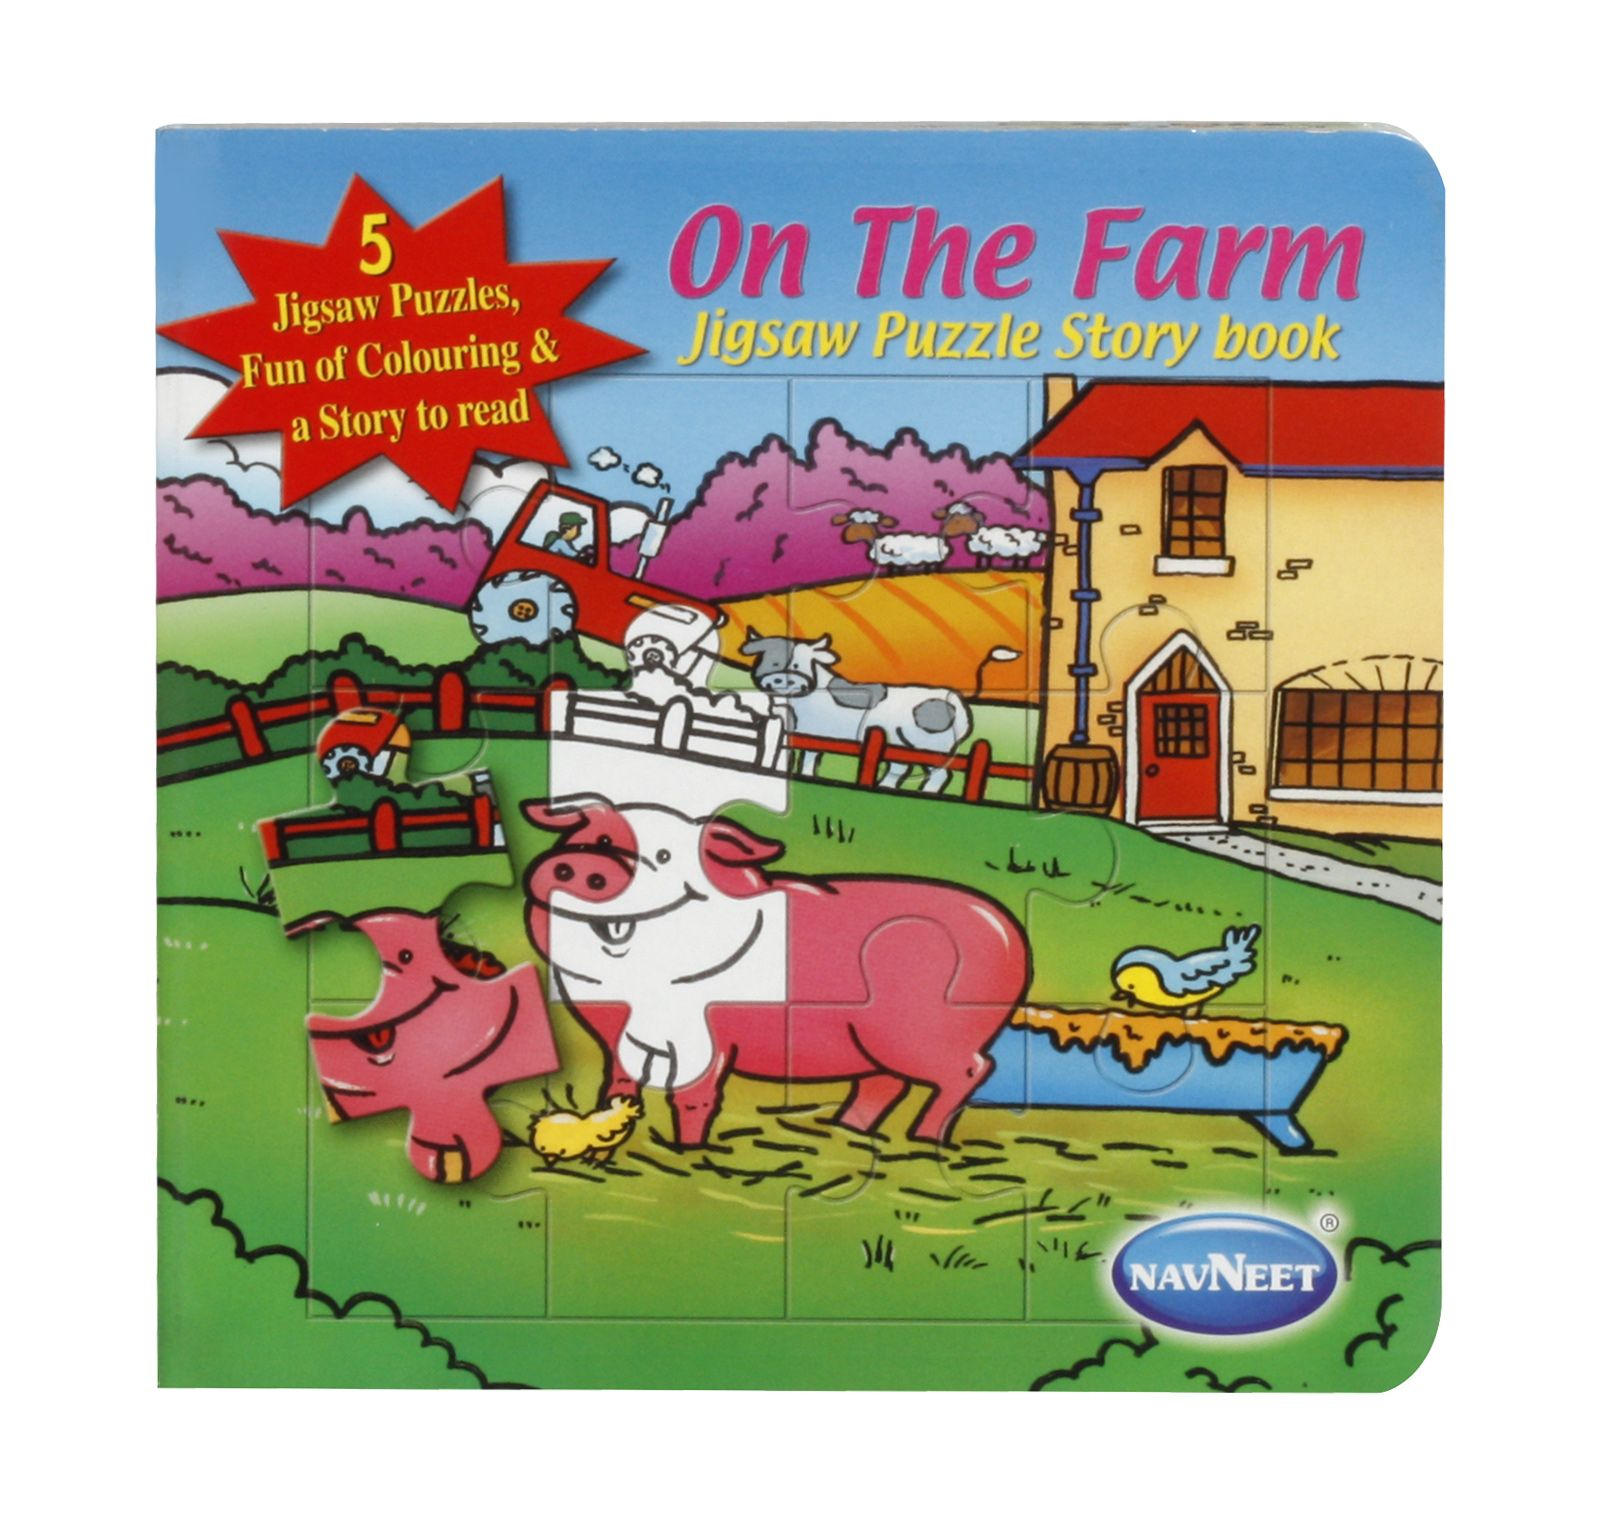 Navneet On The Farm Jigsaw Puzzle Book Price In India 24